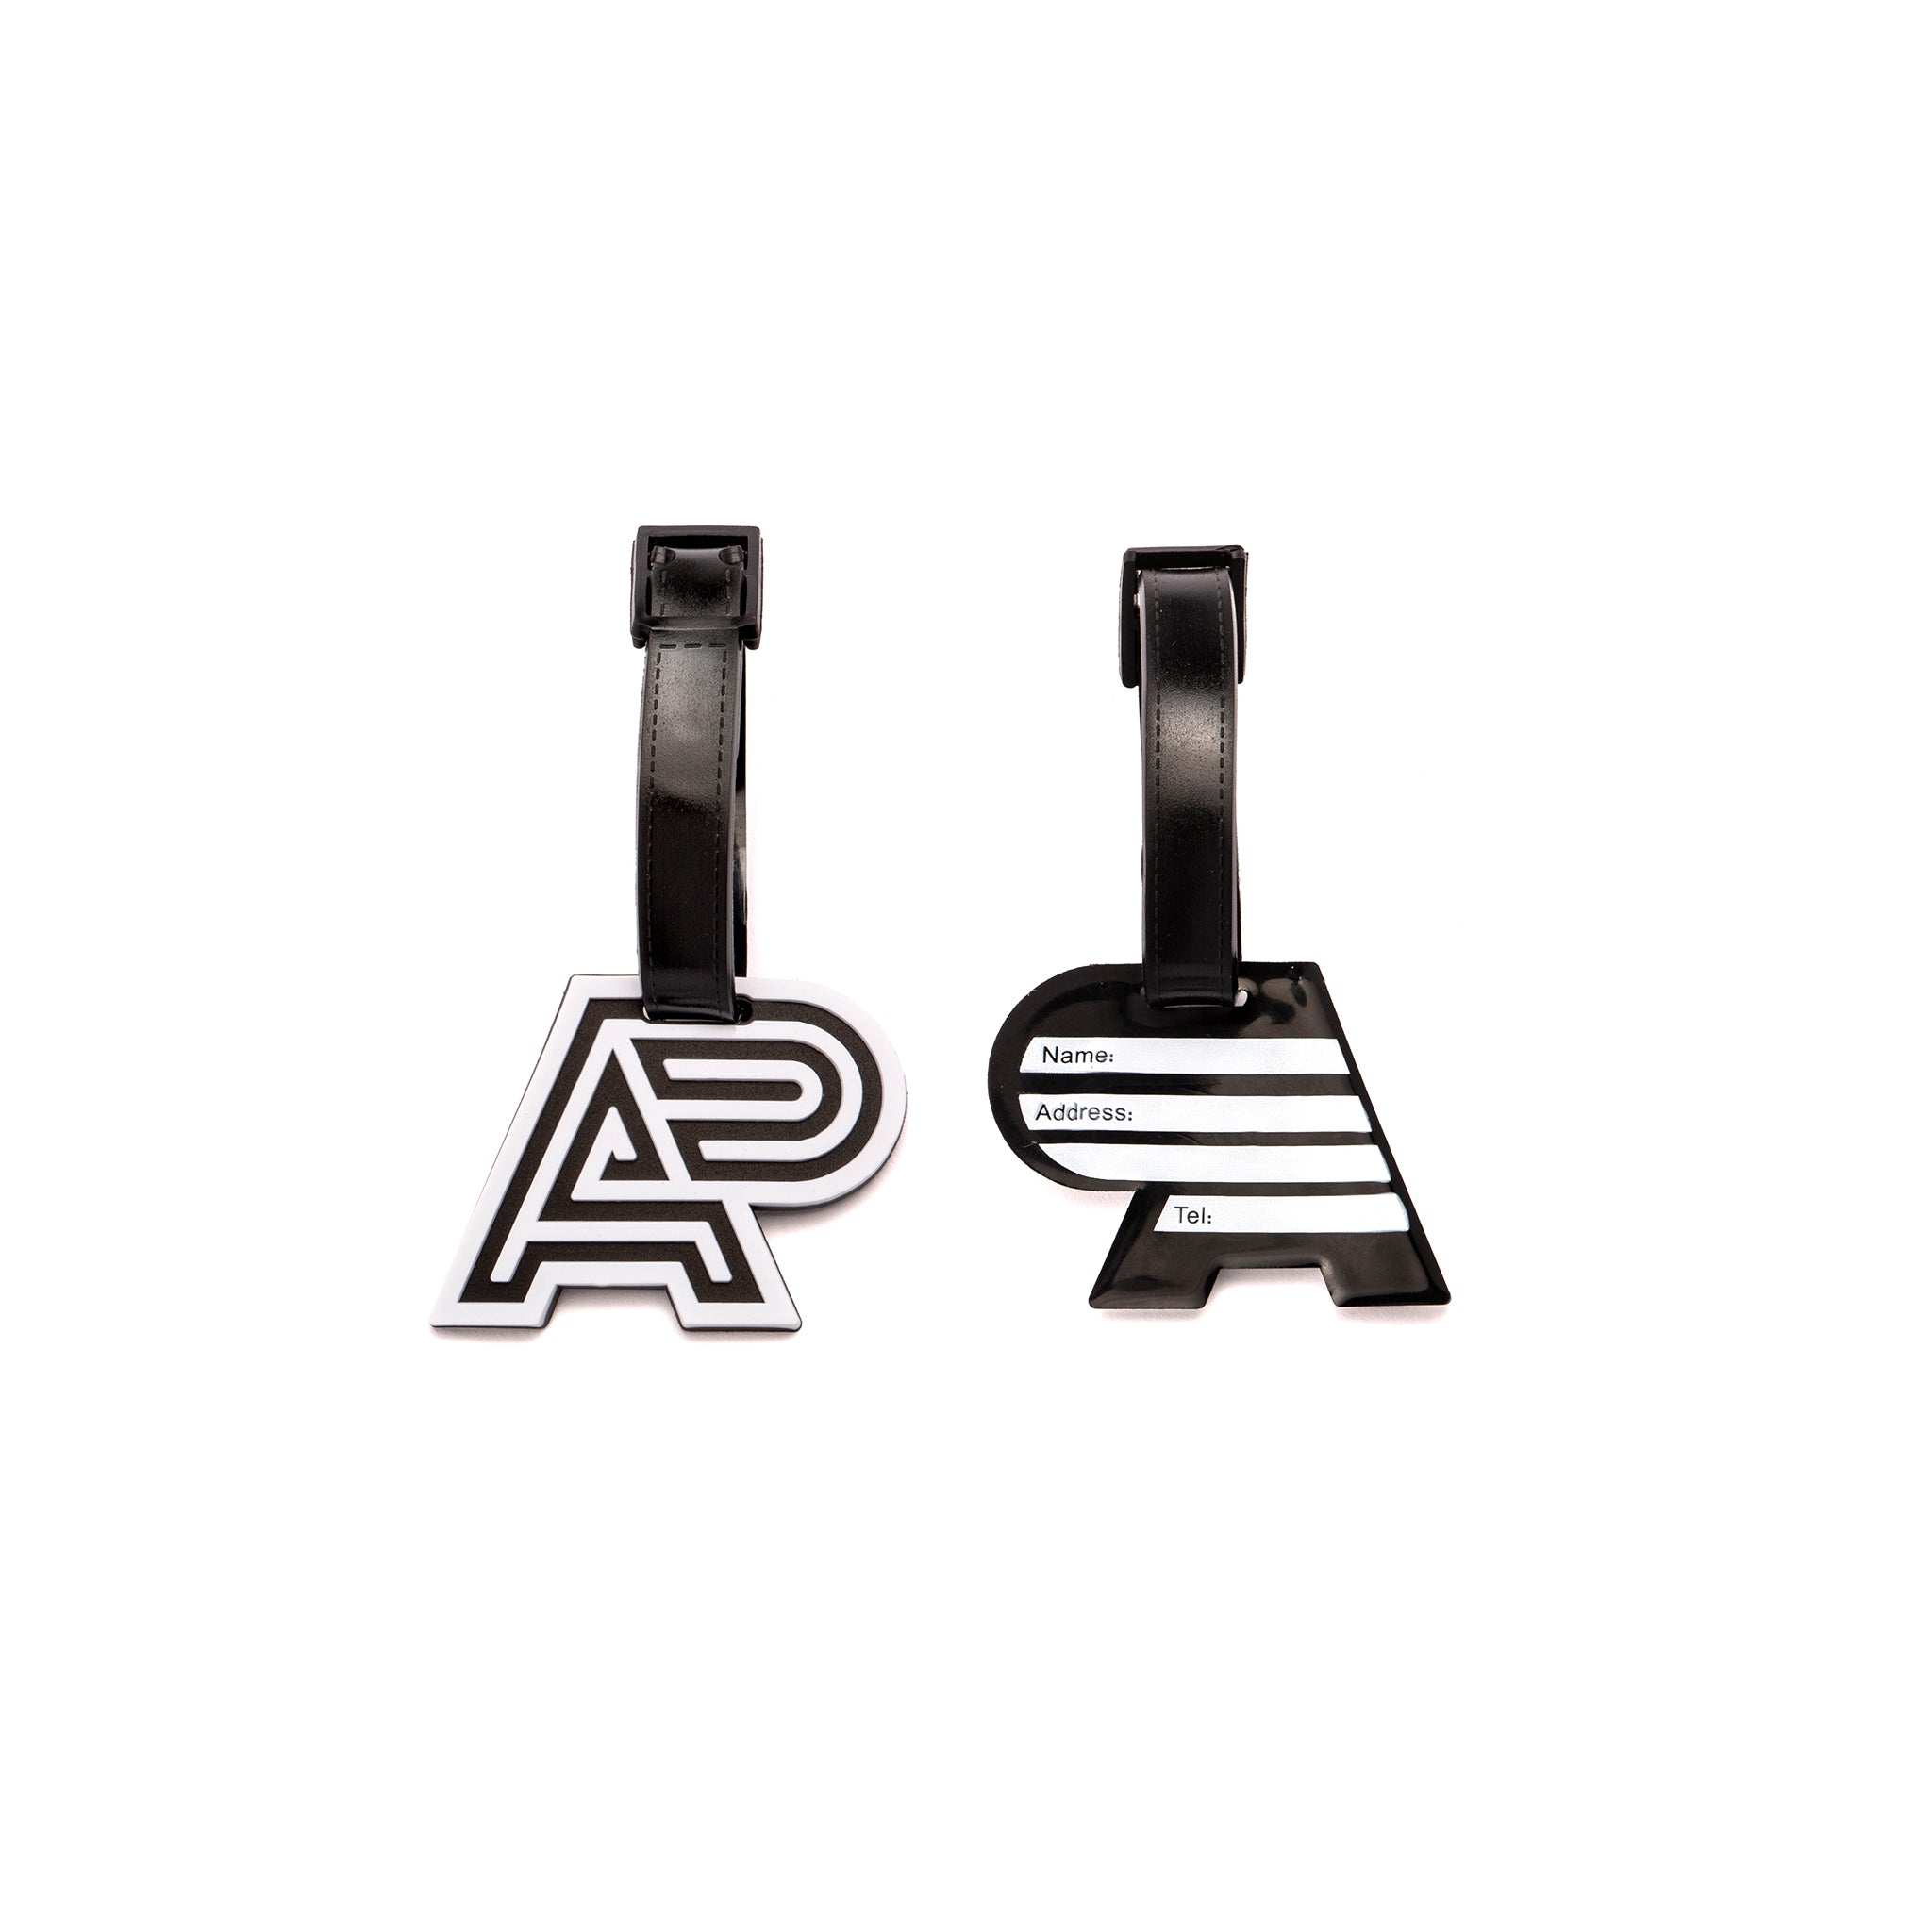 A&P Bag Tag